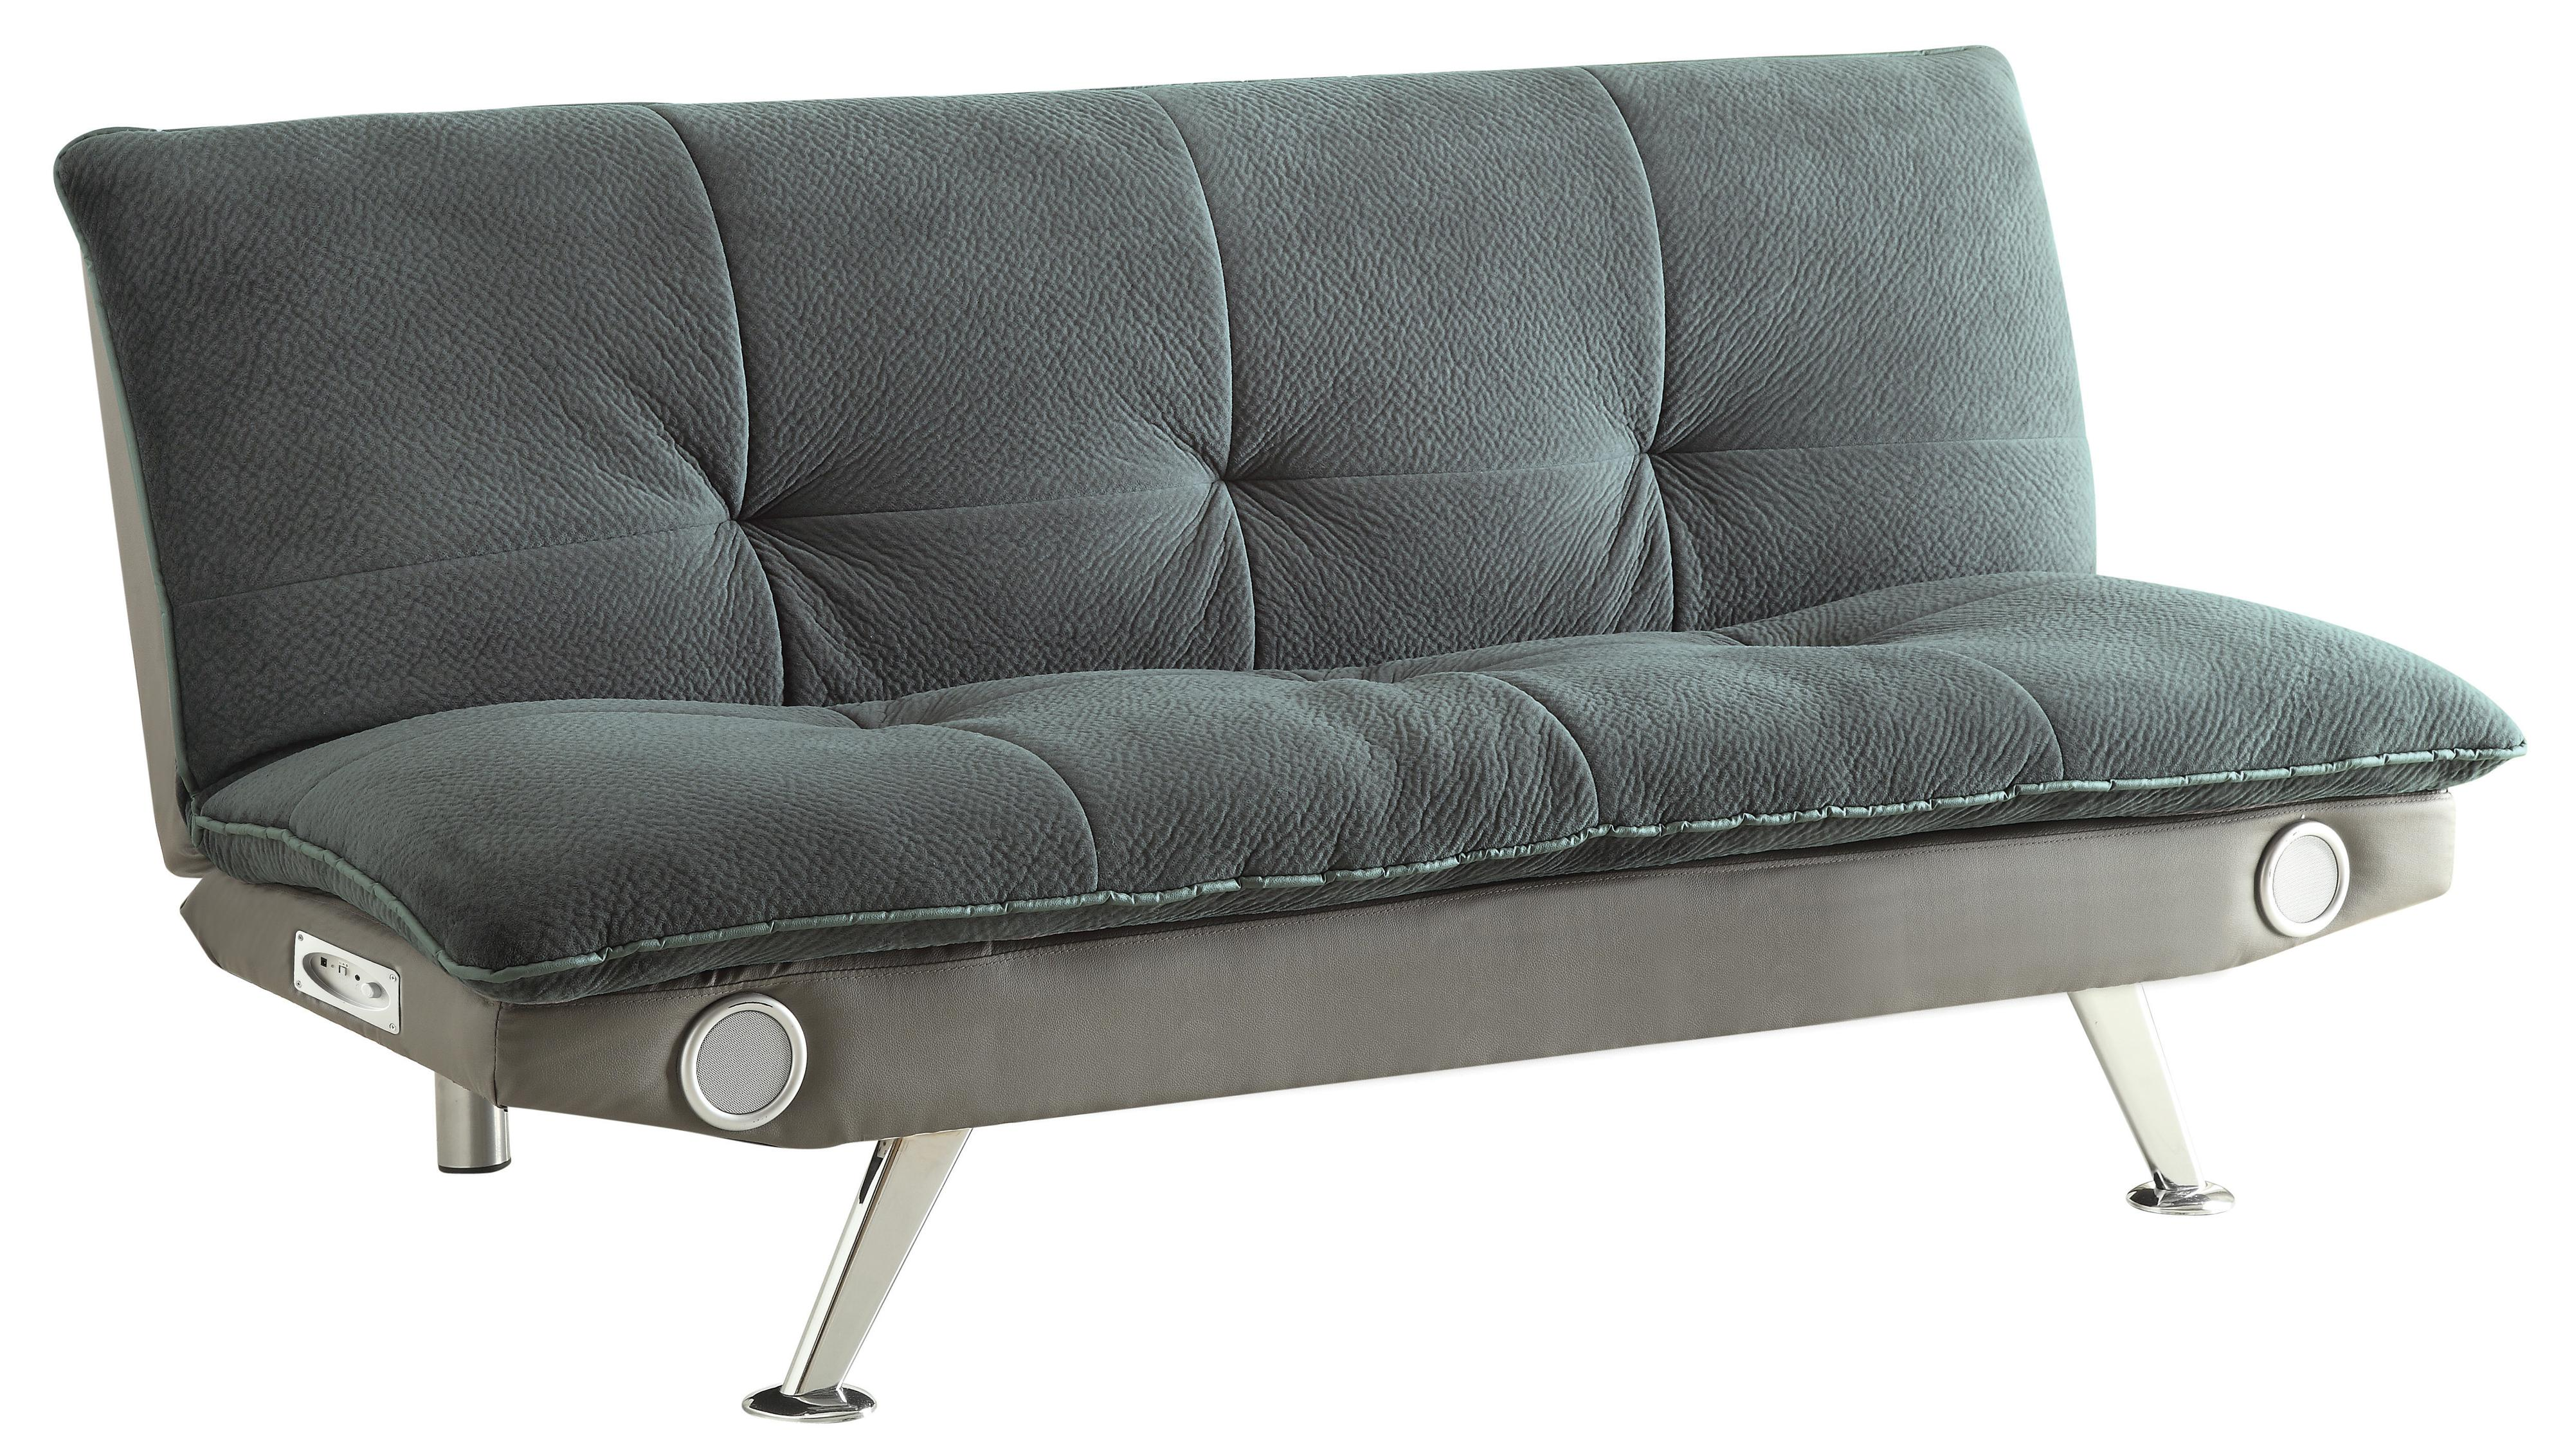 Sofa Beds and Futons Sofa Bed with Built-In Bluetooth Speakers by Coaster at Value City Furniture